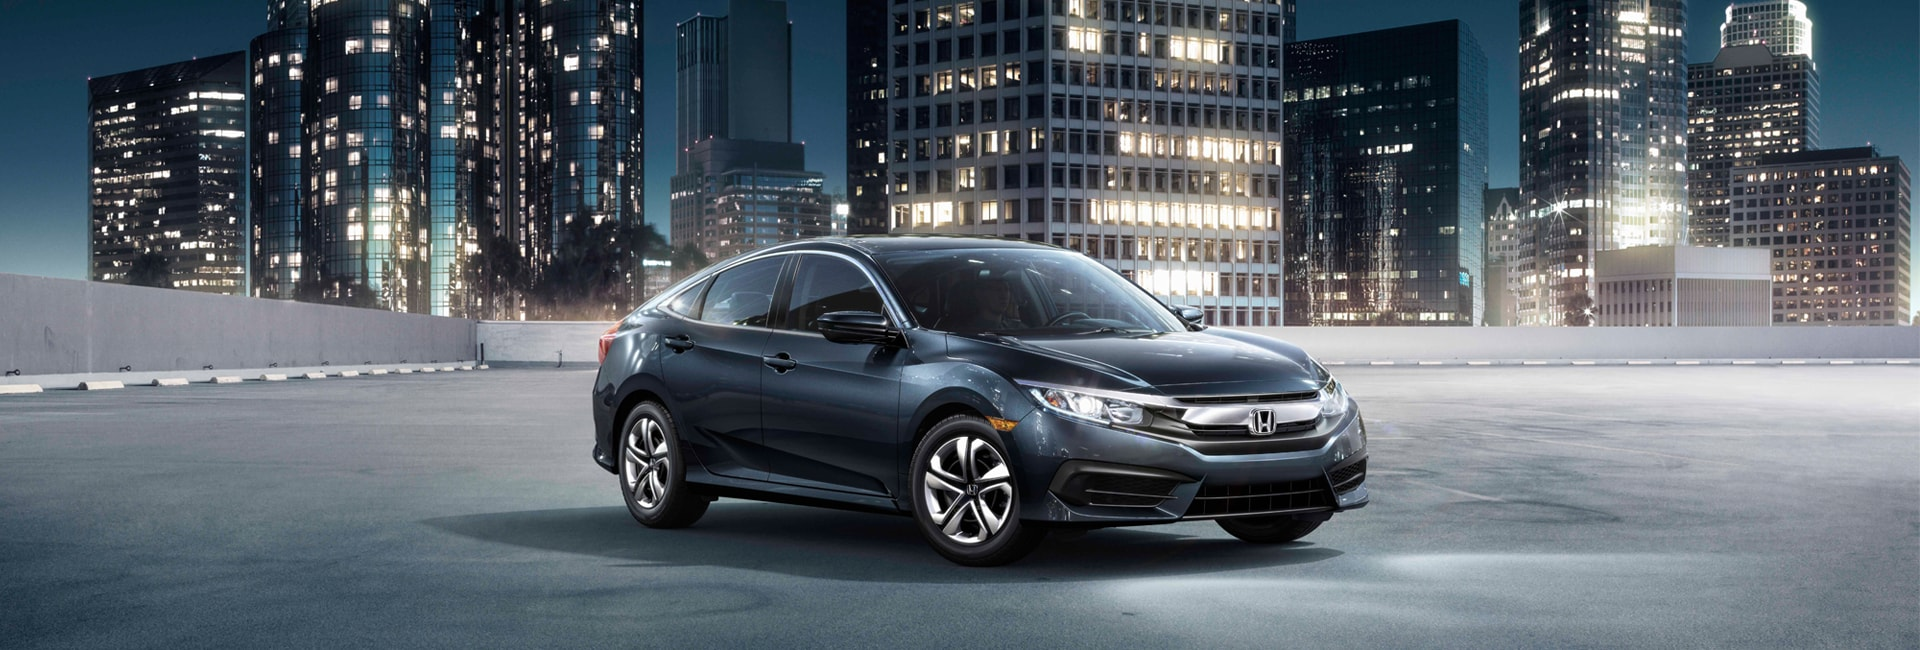 2018 Honda Civic Exterior Features